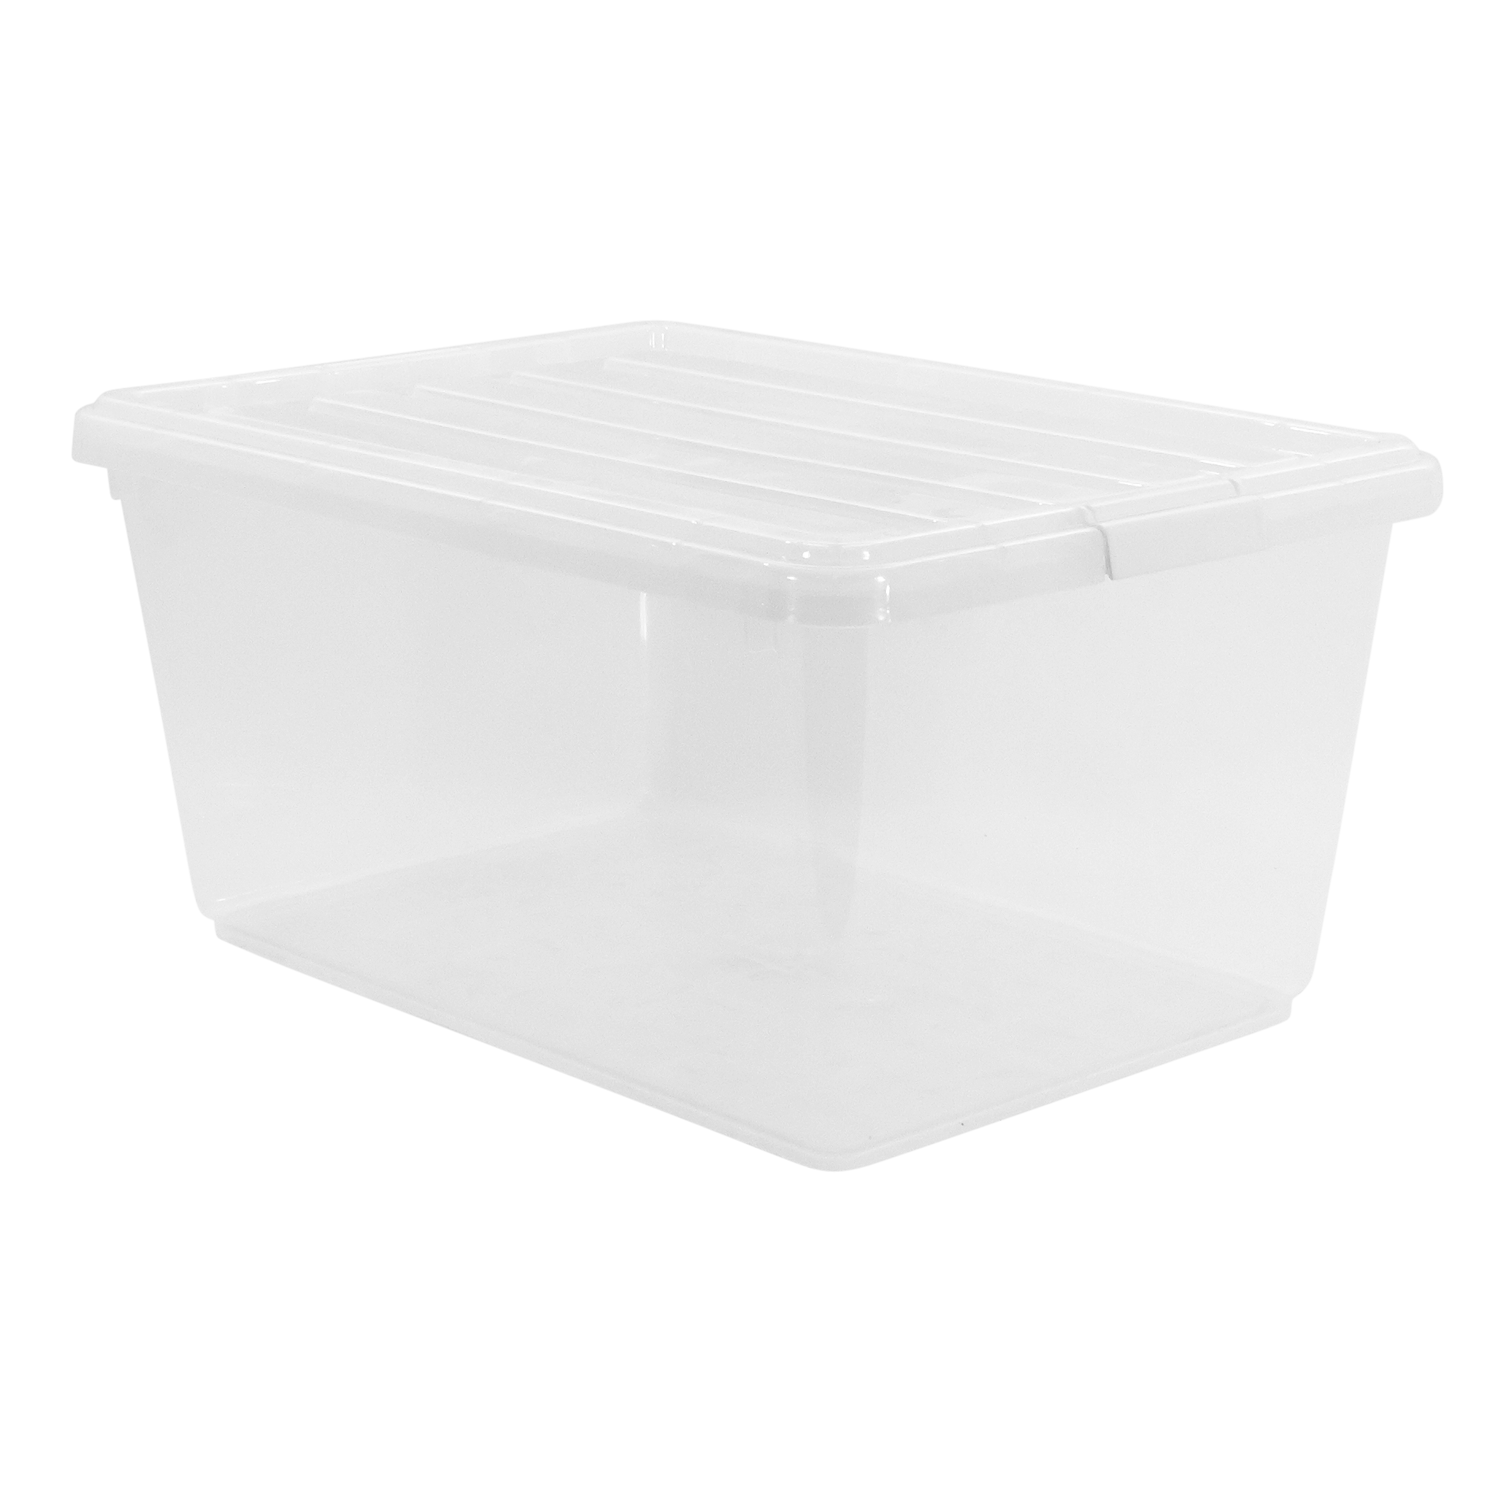 clip library stock Large Plastic Storage Boxes